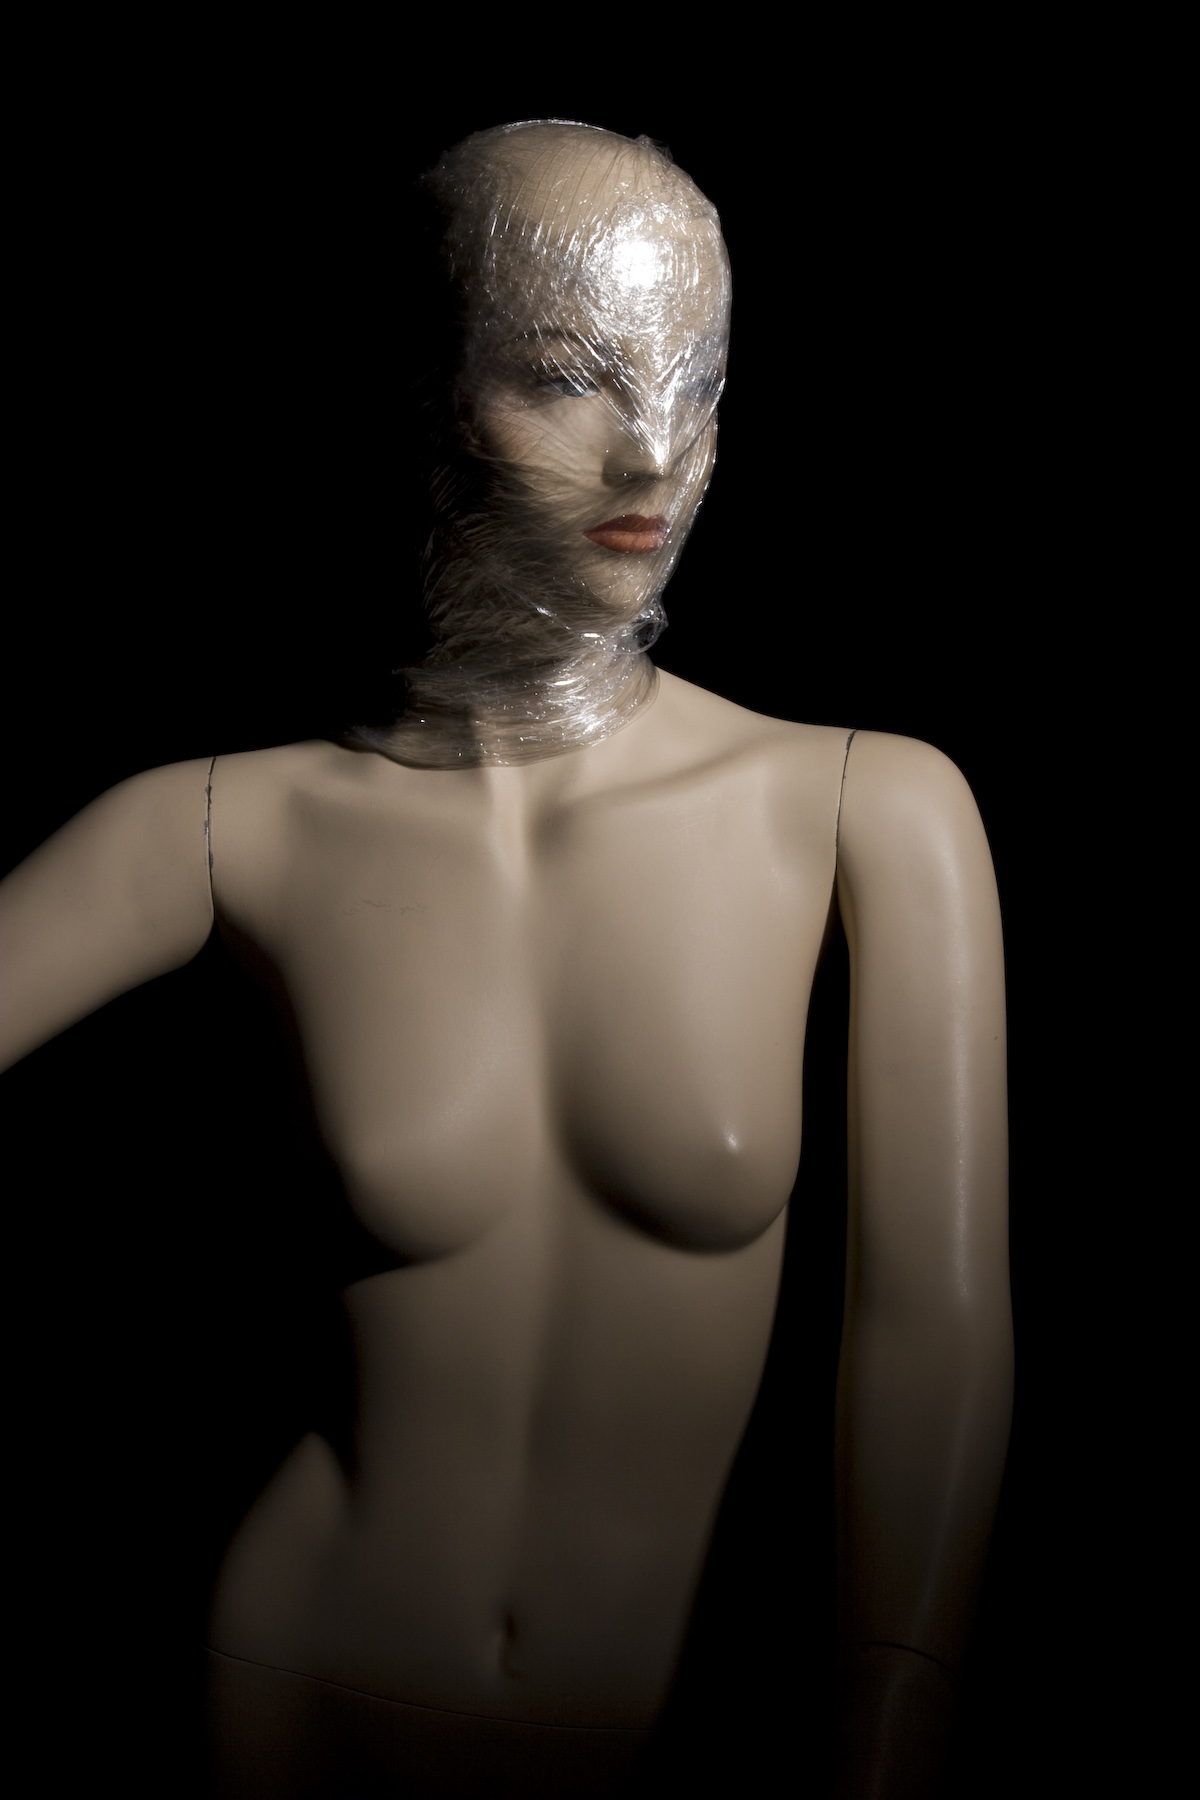 Mannequin, Art, Modeling, Studio, Smooth, HQ Photo